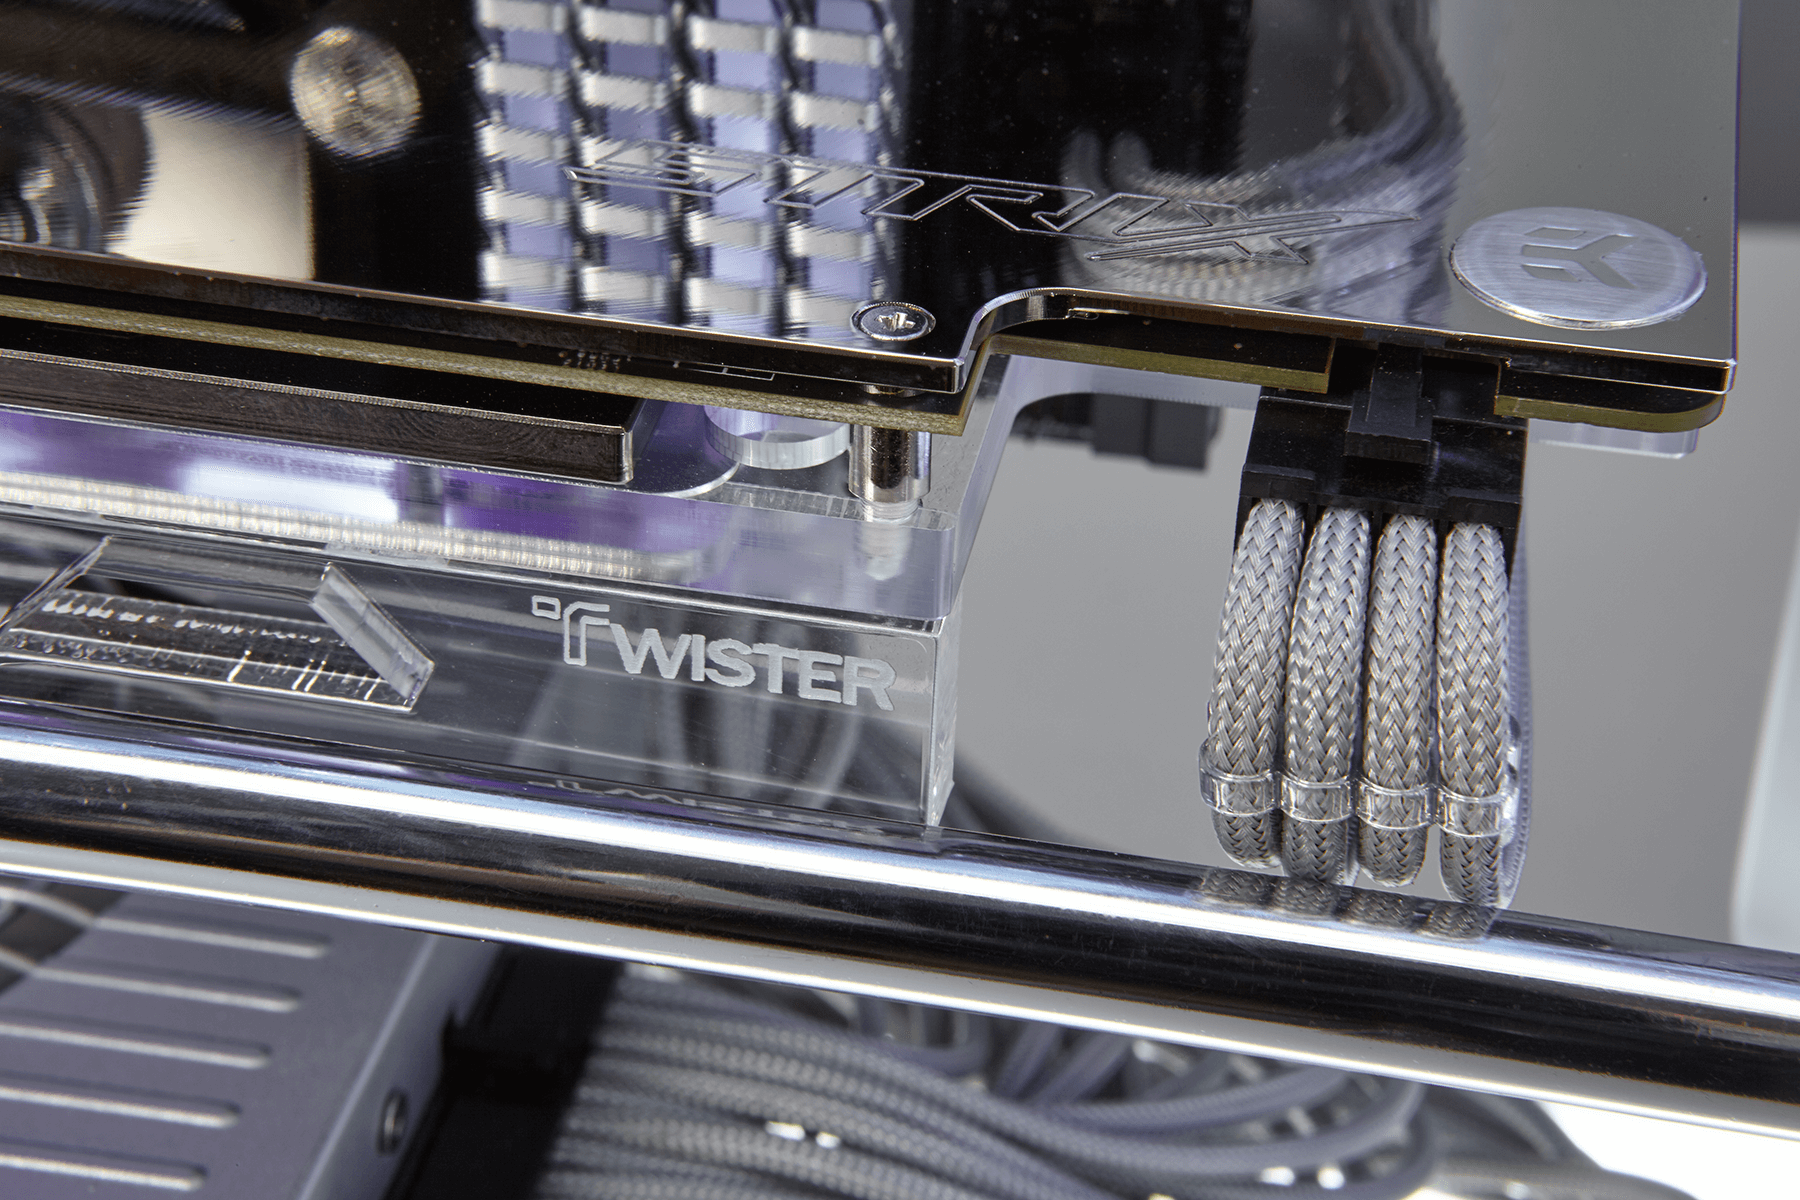 Twistermod_Corsair_ROG_570x_Crystalized_13